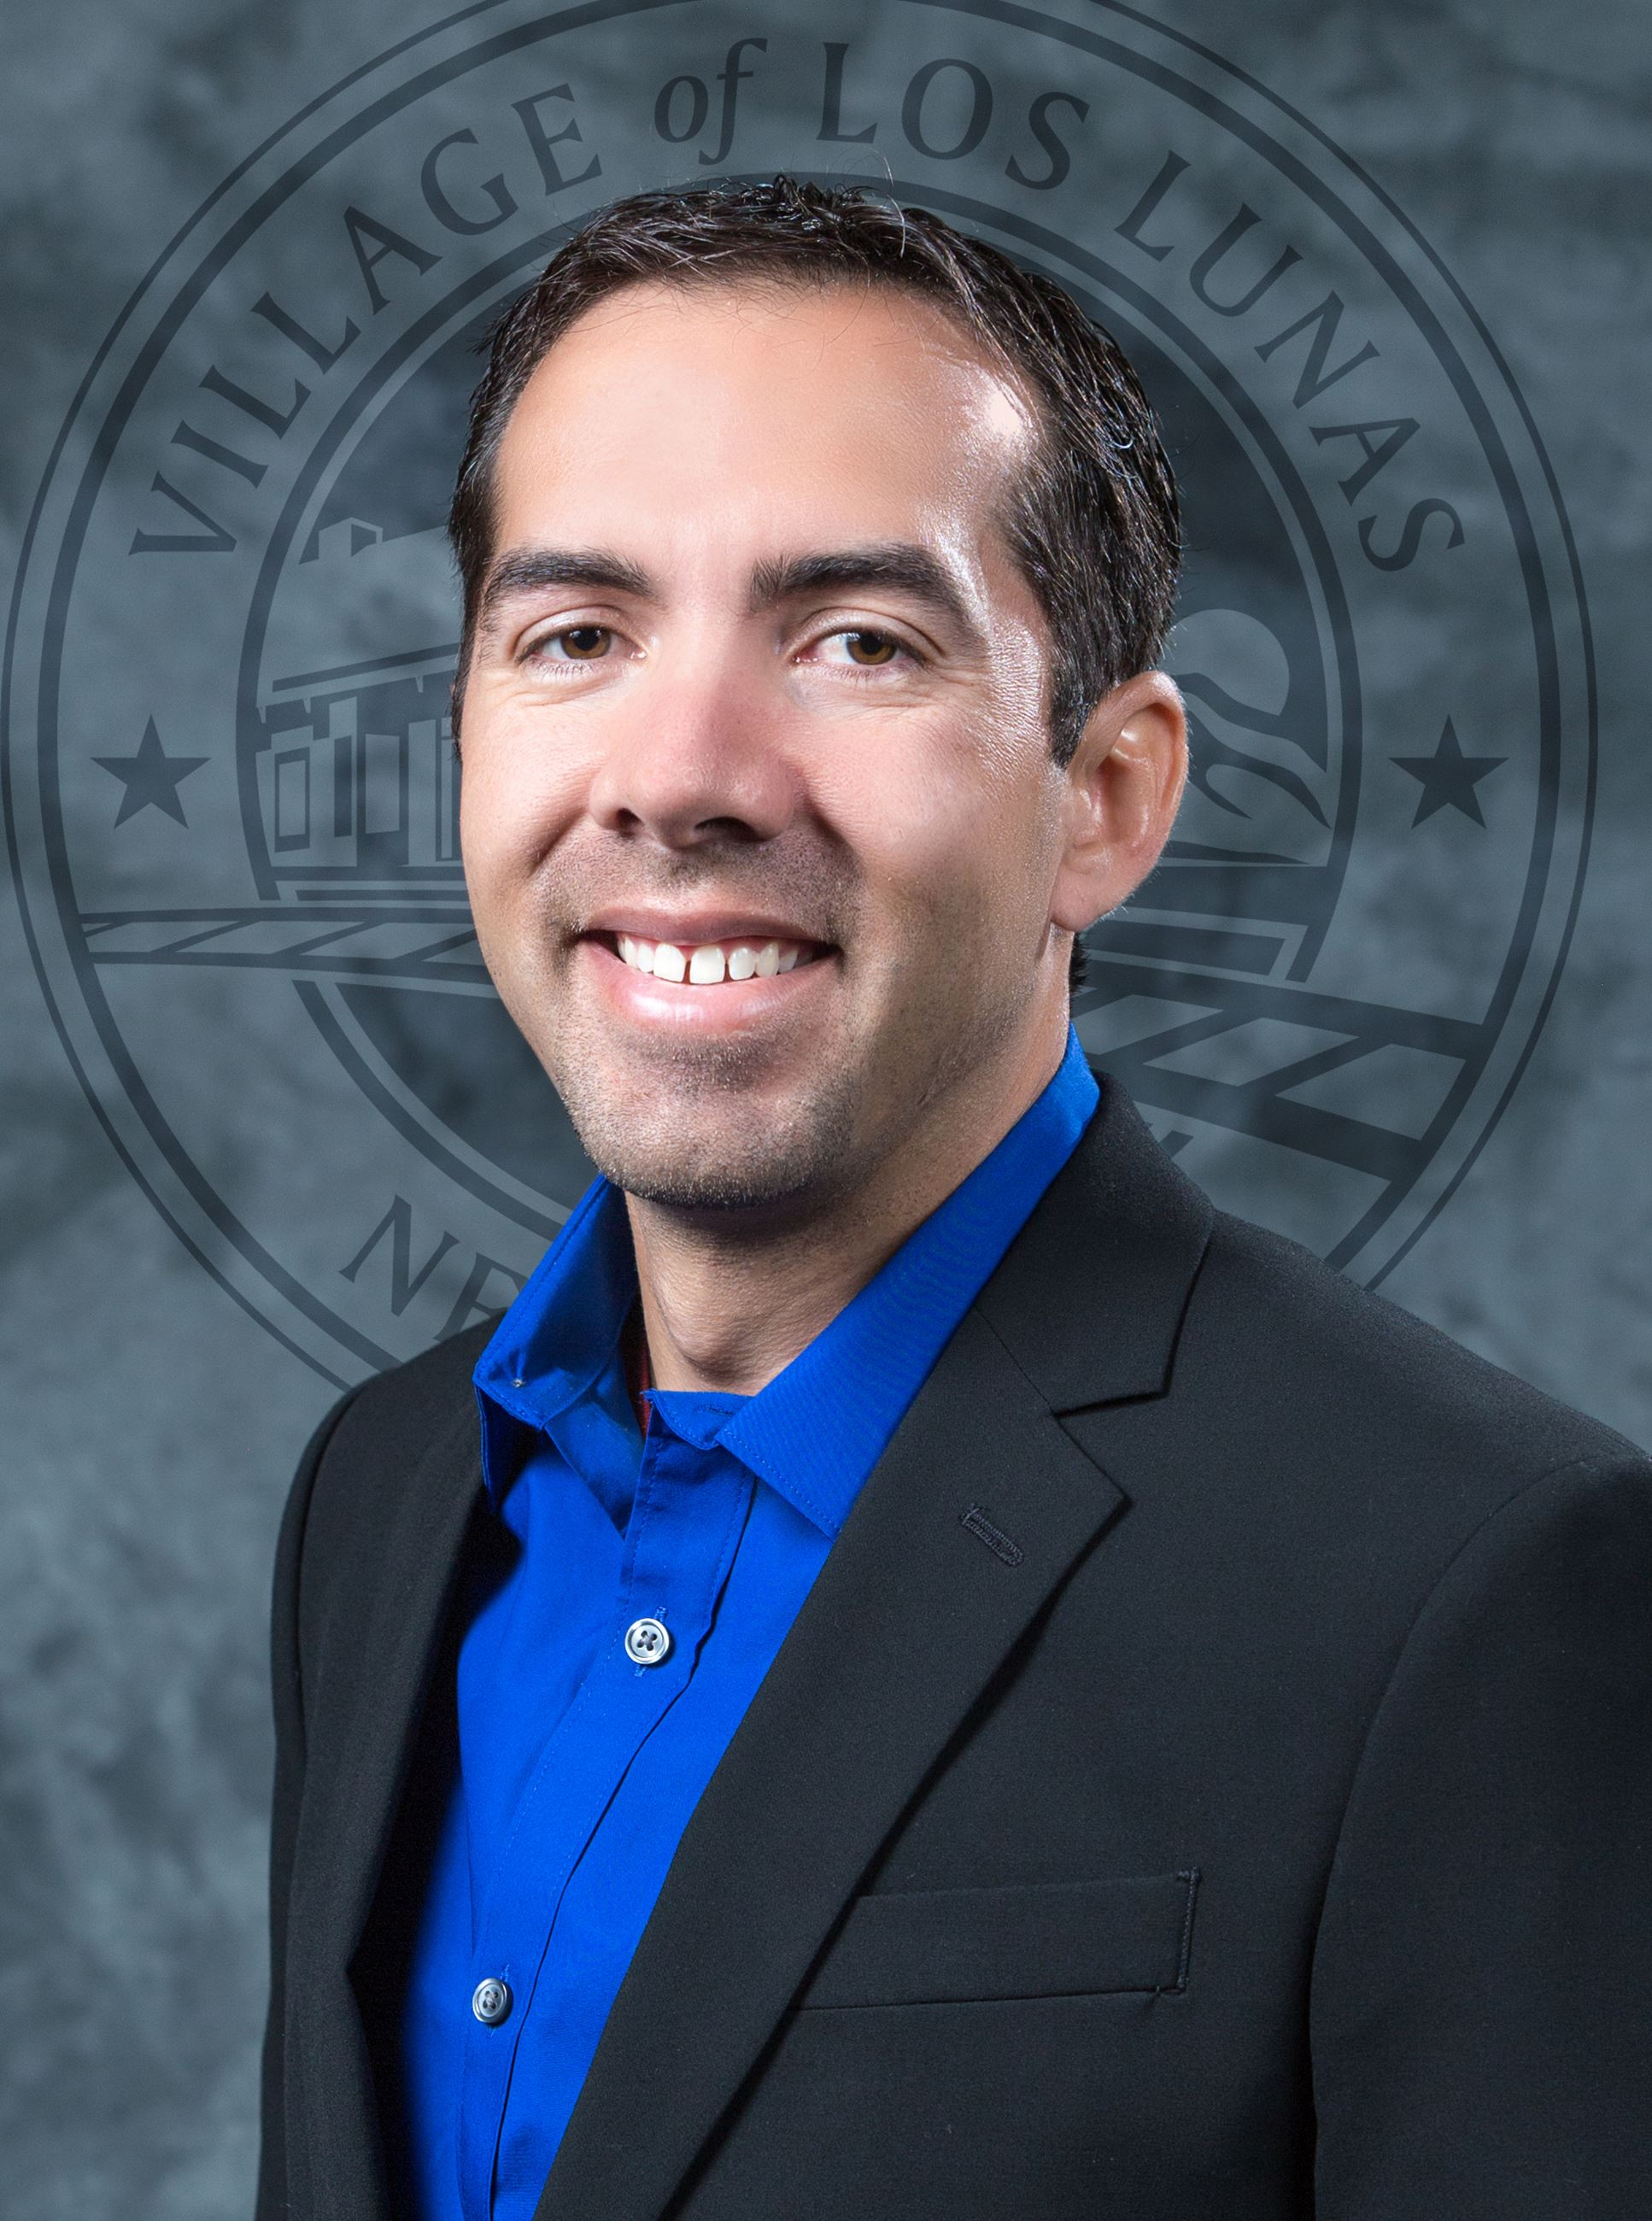 Jason Duran, Community Services Director